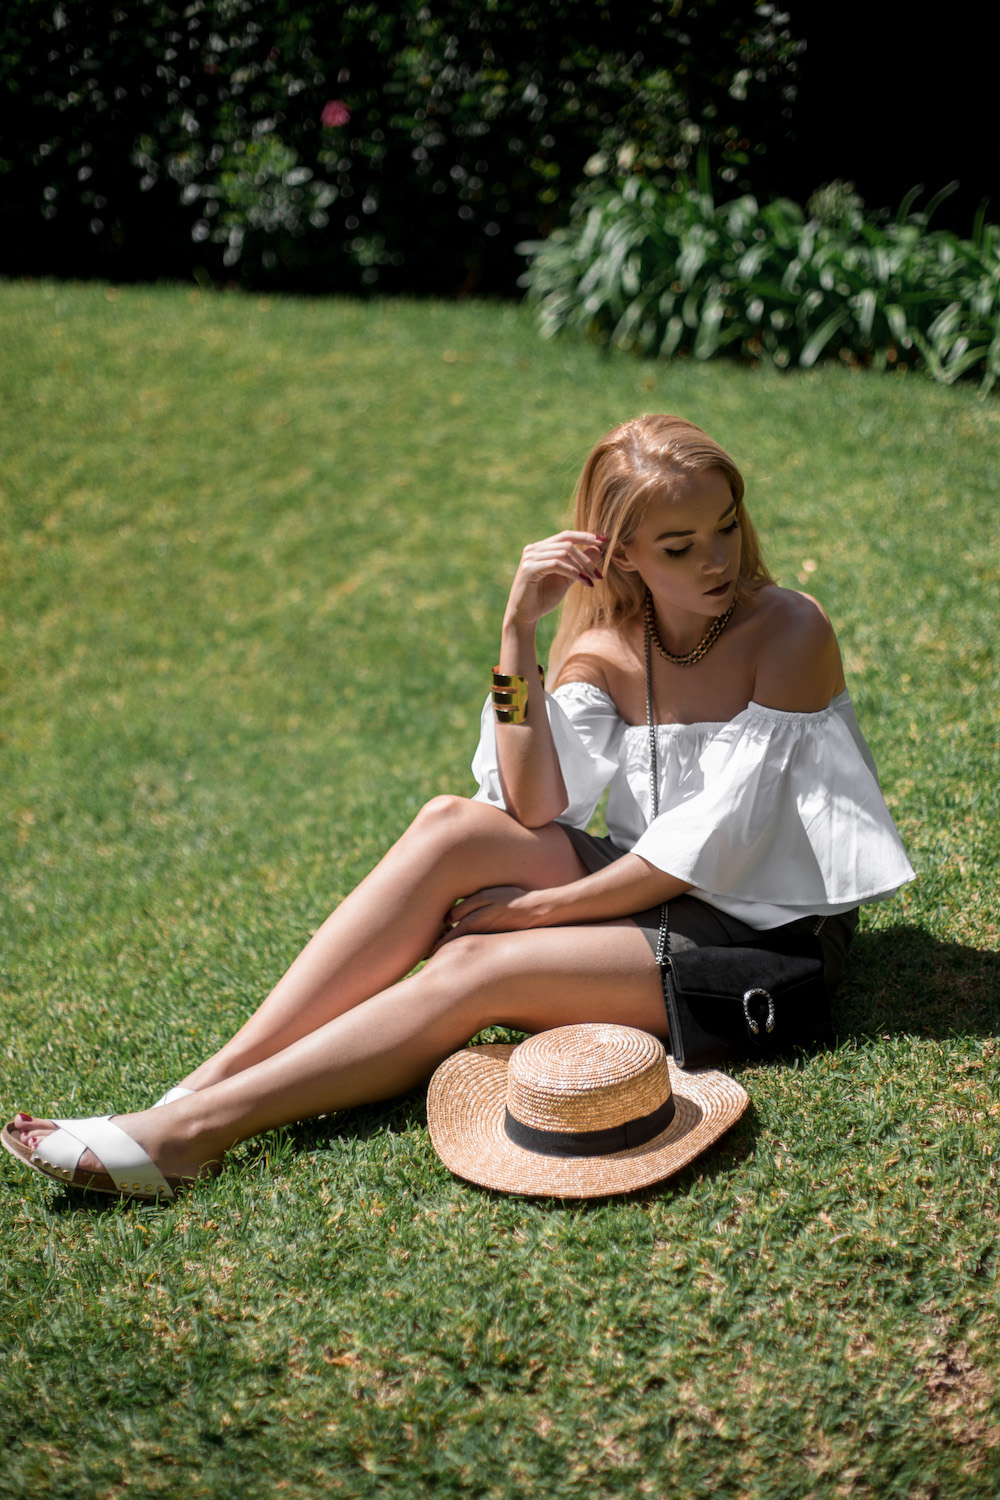 silver_girl_rattan_and_straw_2.jpg